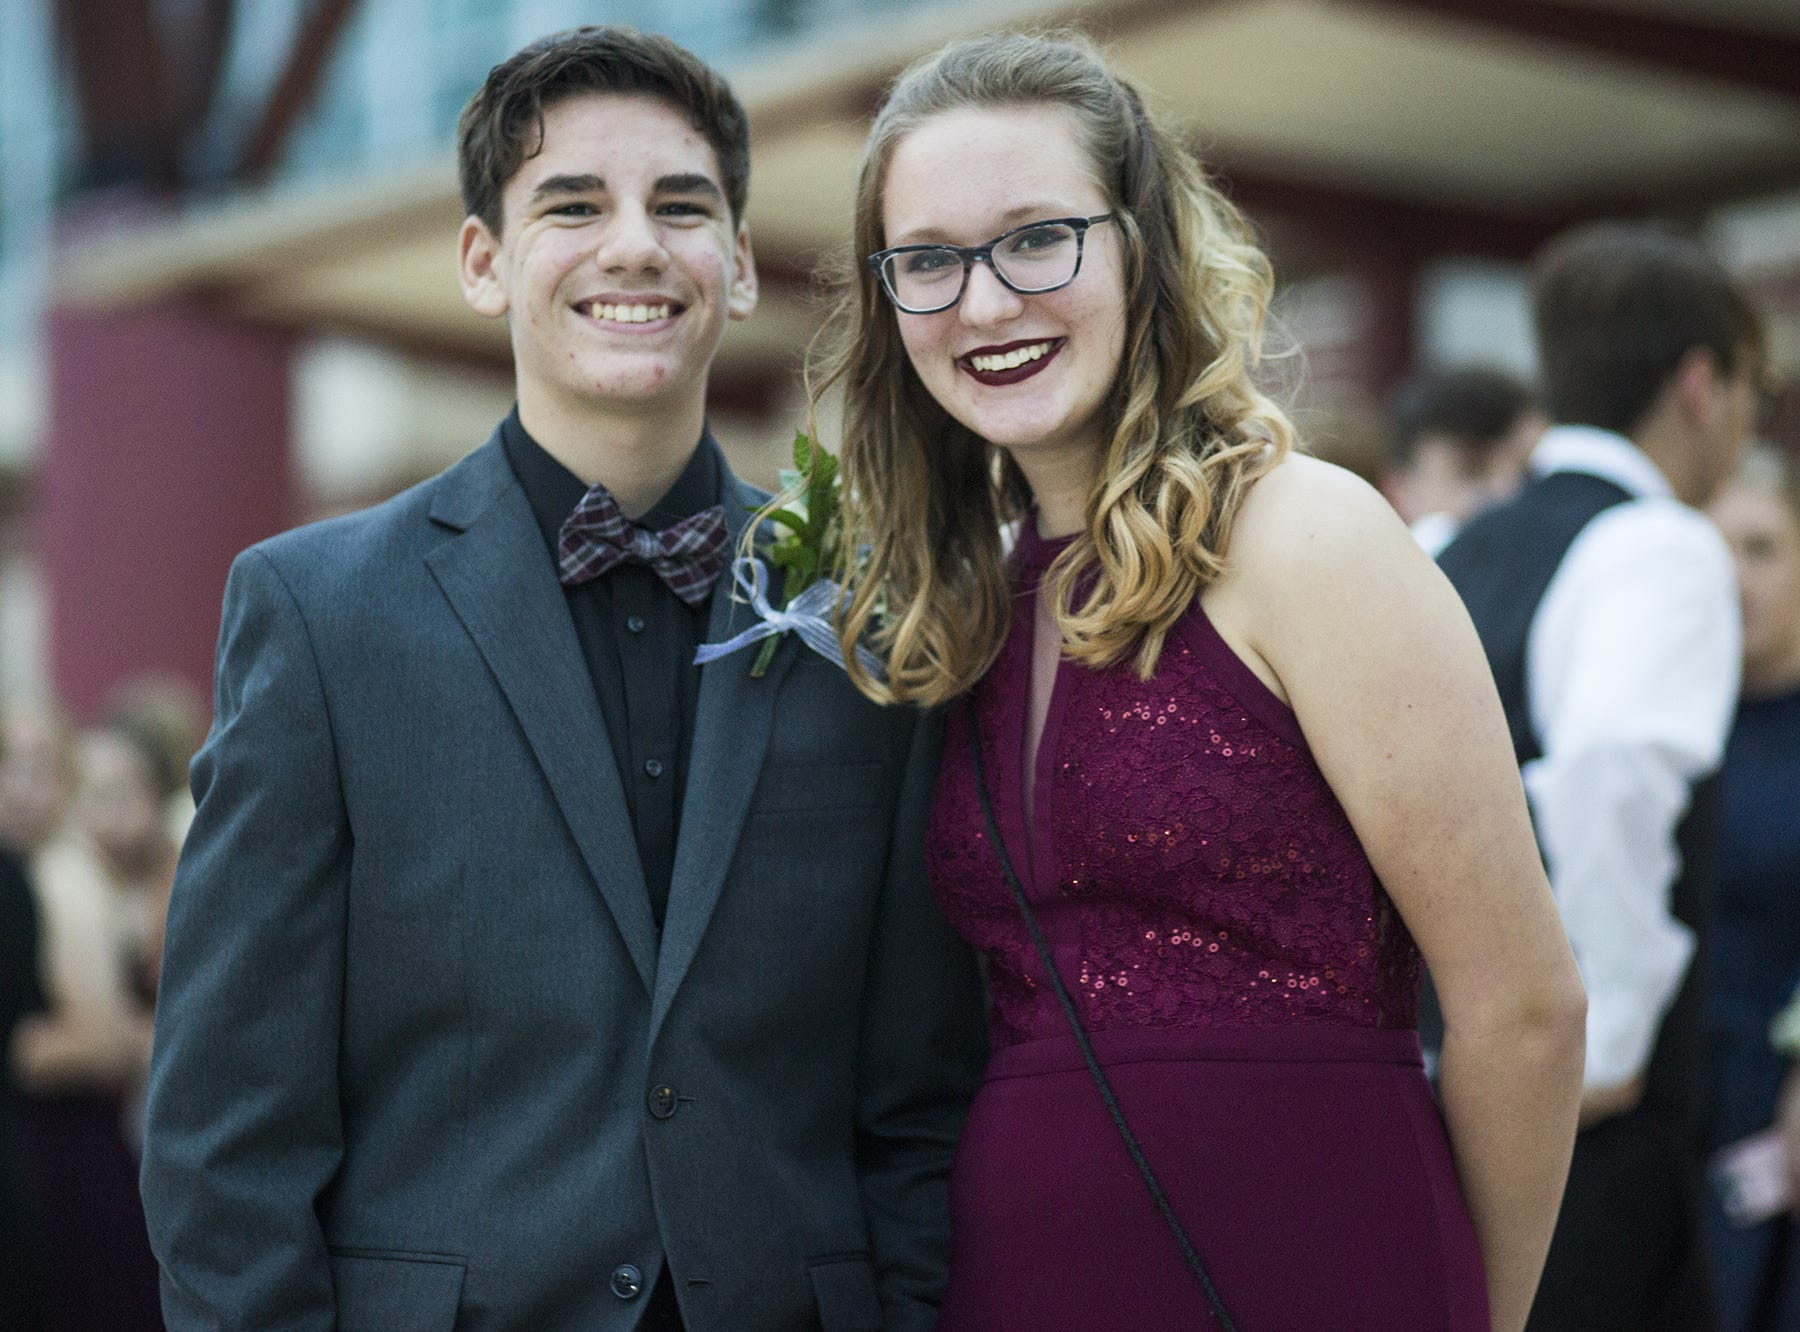 Students attend the Central York High School homecoming dance, Saturday, October 6, 2018.